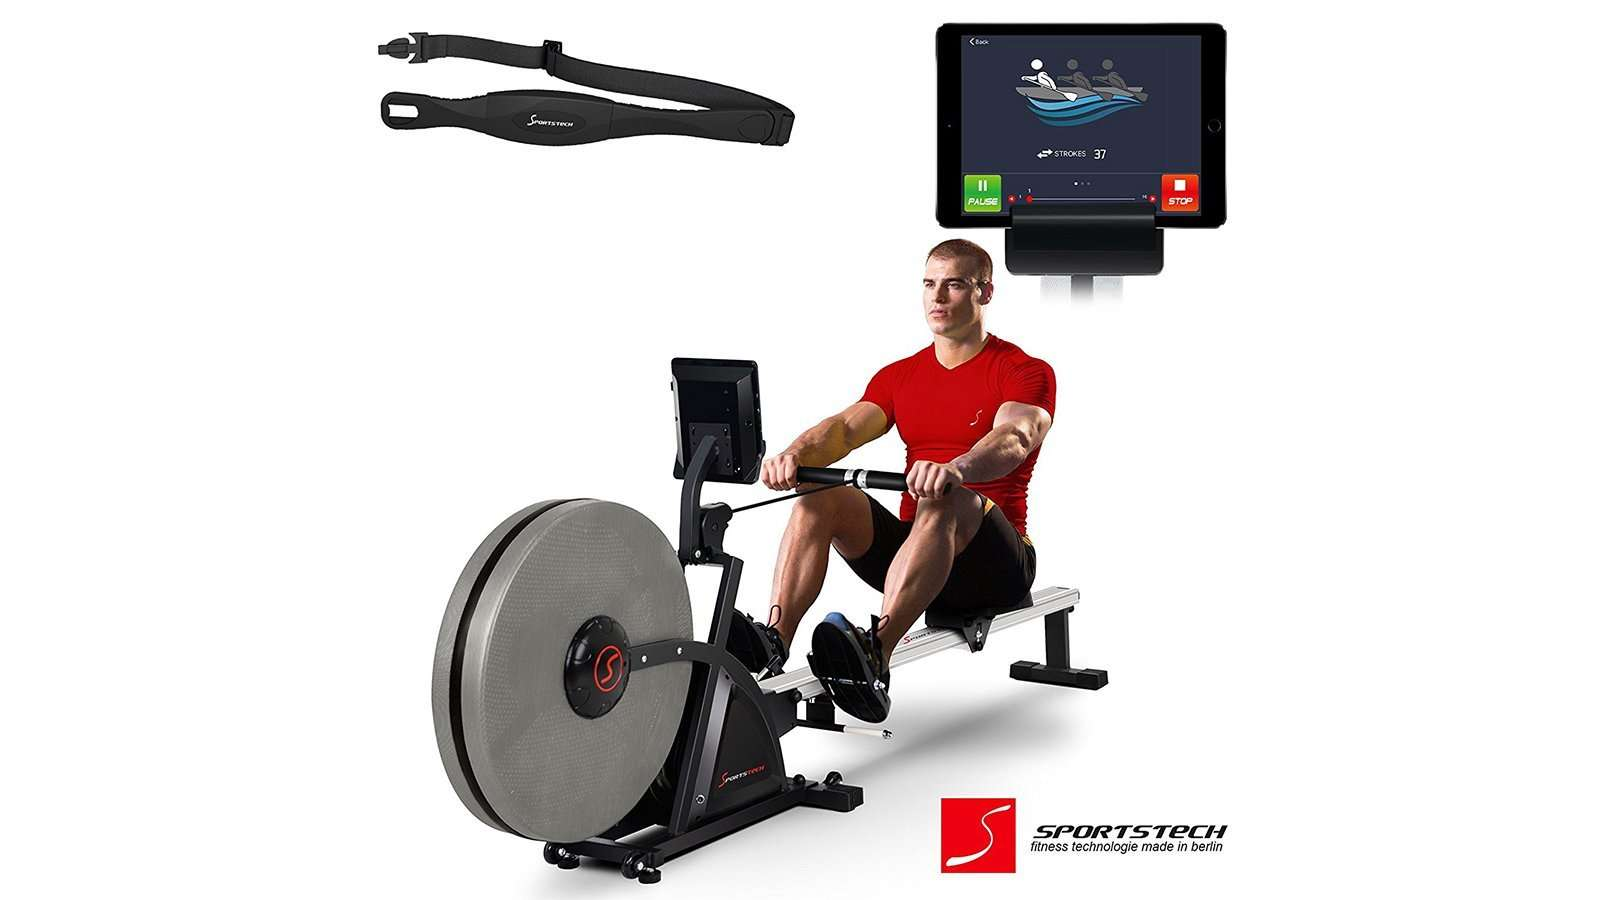 Best Rowing Machine 2018: The 6 BEST Home Rowing Machines